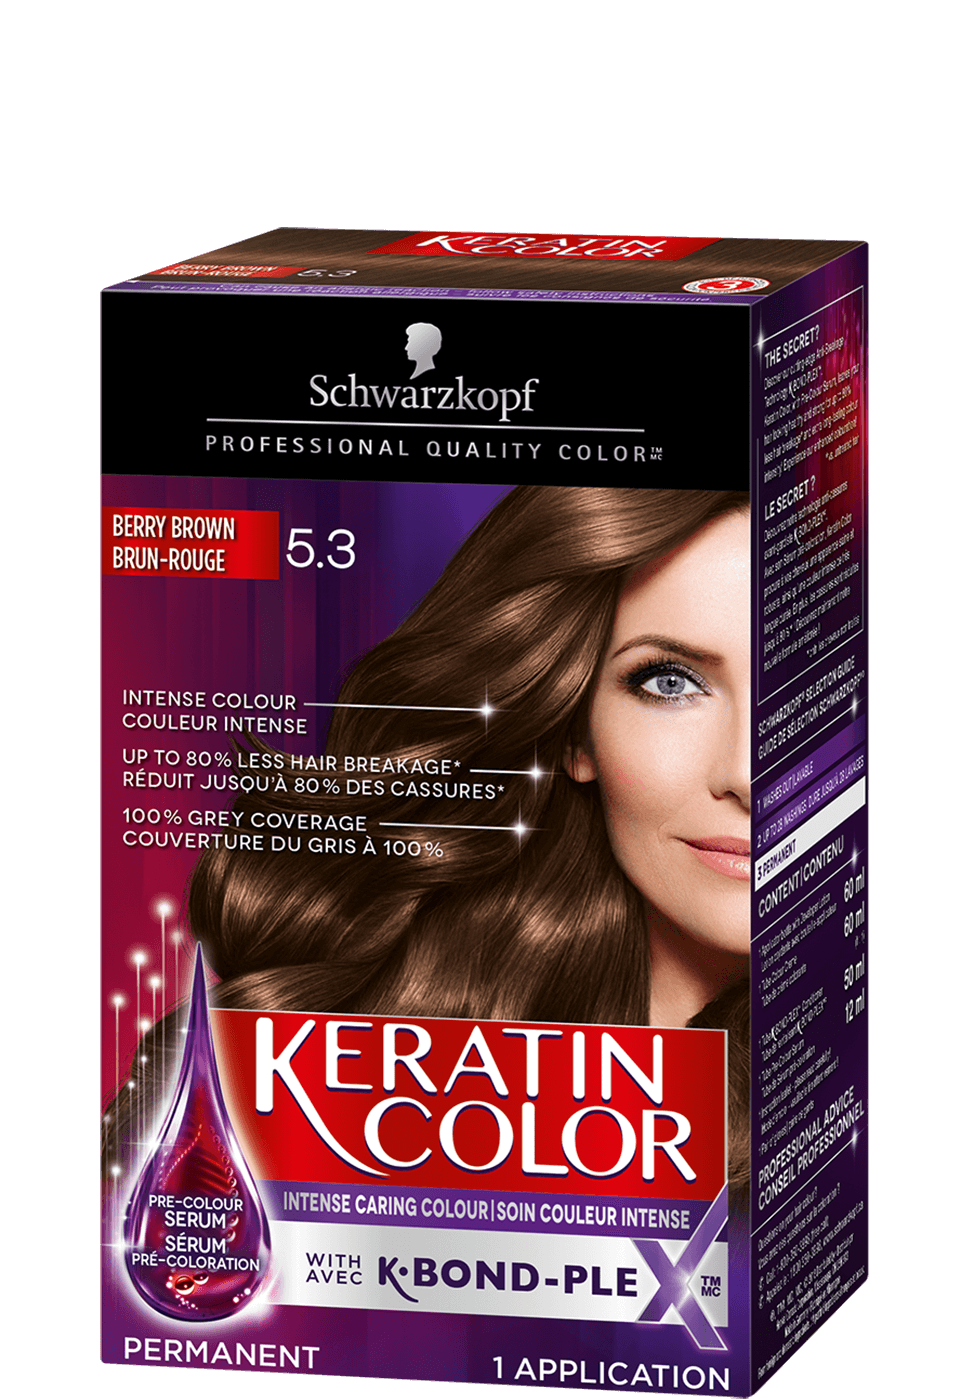 Keratin_Color_en_5_3_970x1400